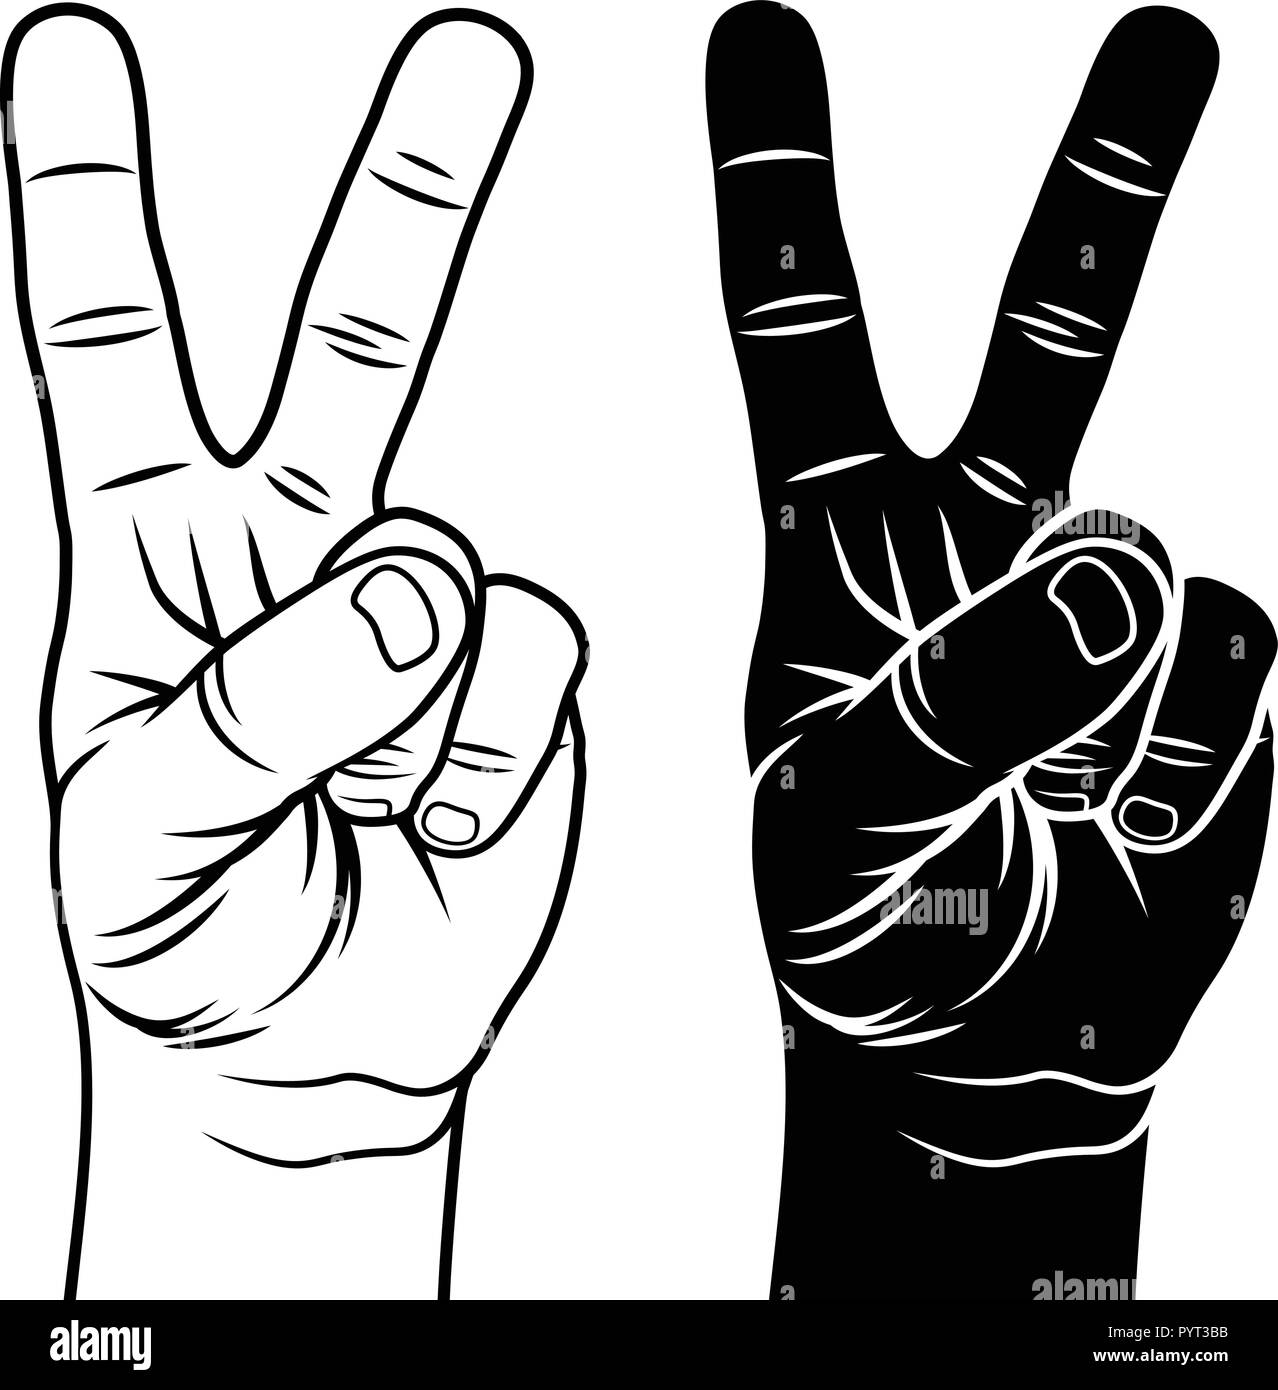 Victory and Peace Gesture Symbol  Hand with two fingers up